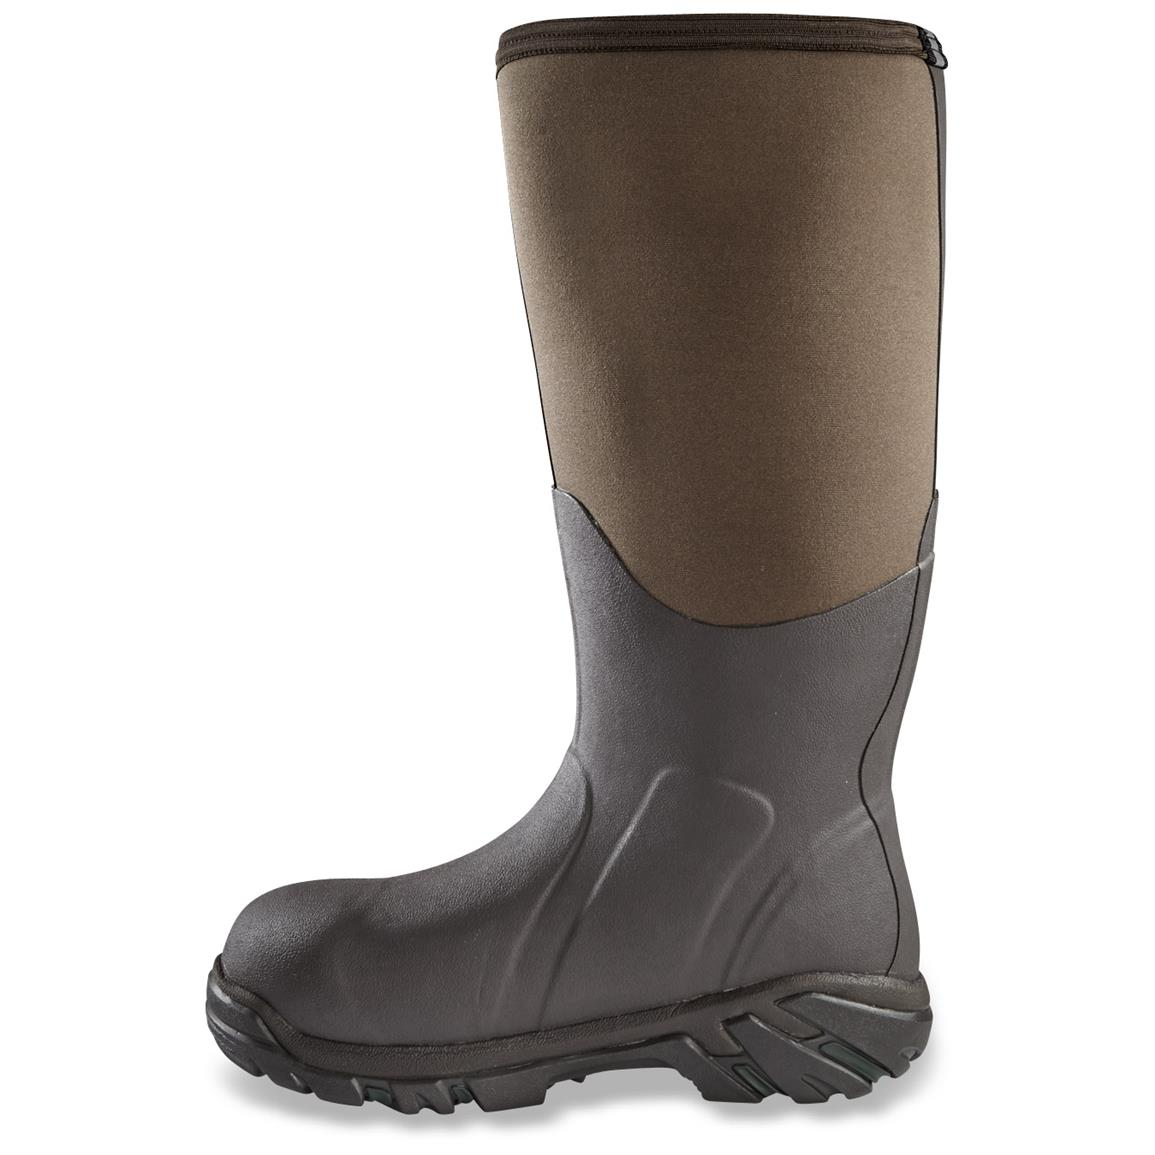 Mens Muck Boots 8S3C58Nj